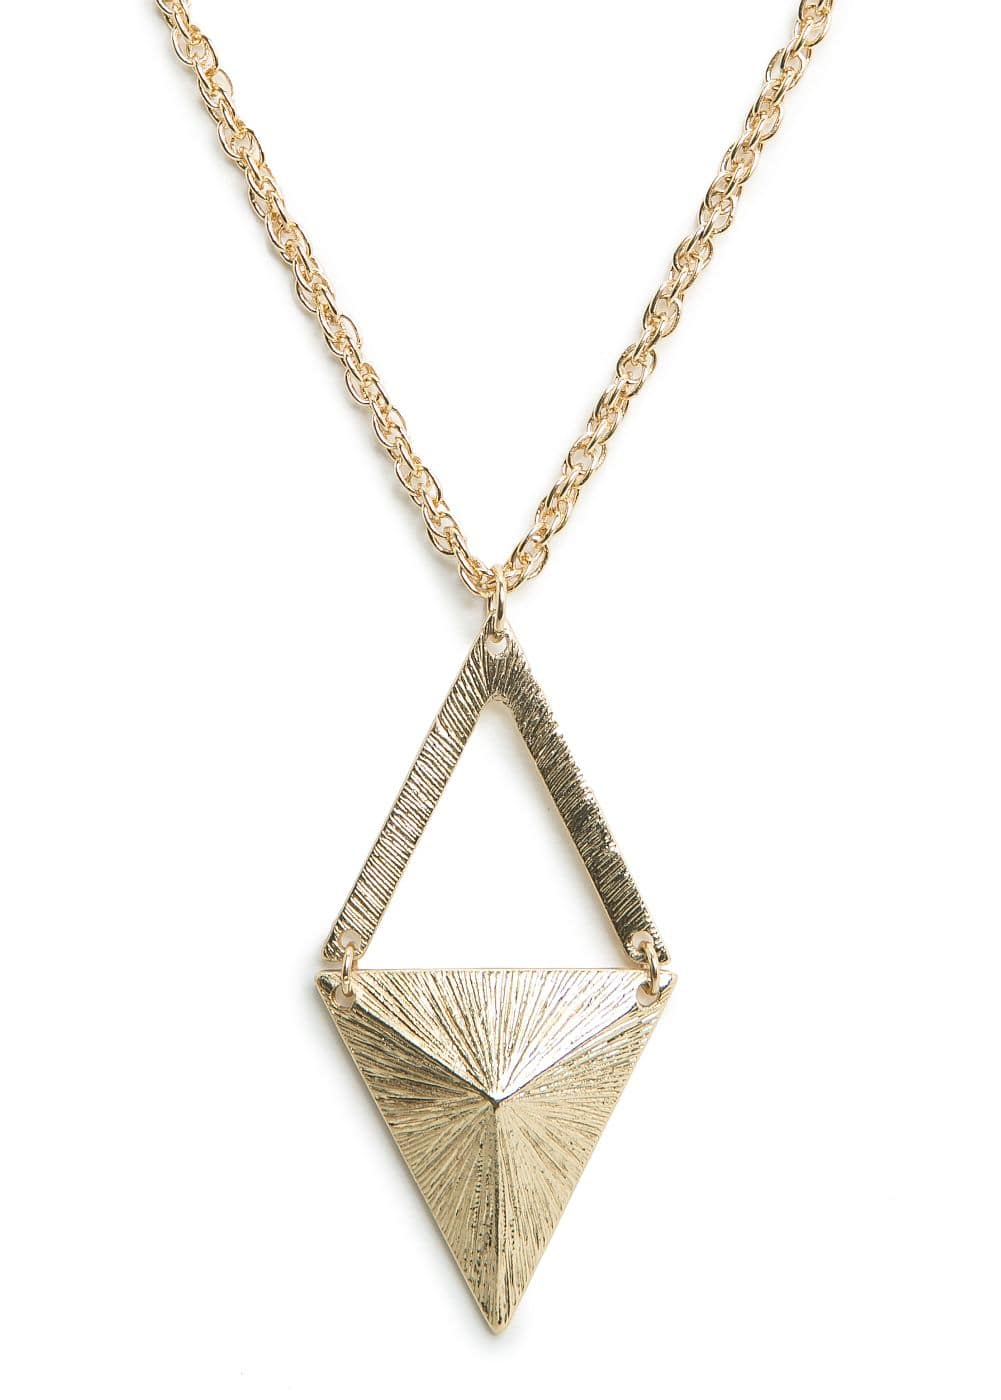 Rhombus pendant necklace